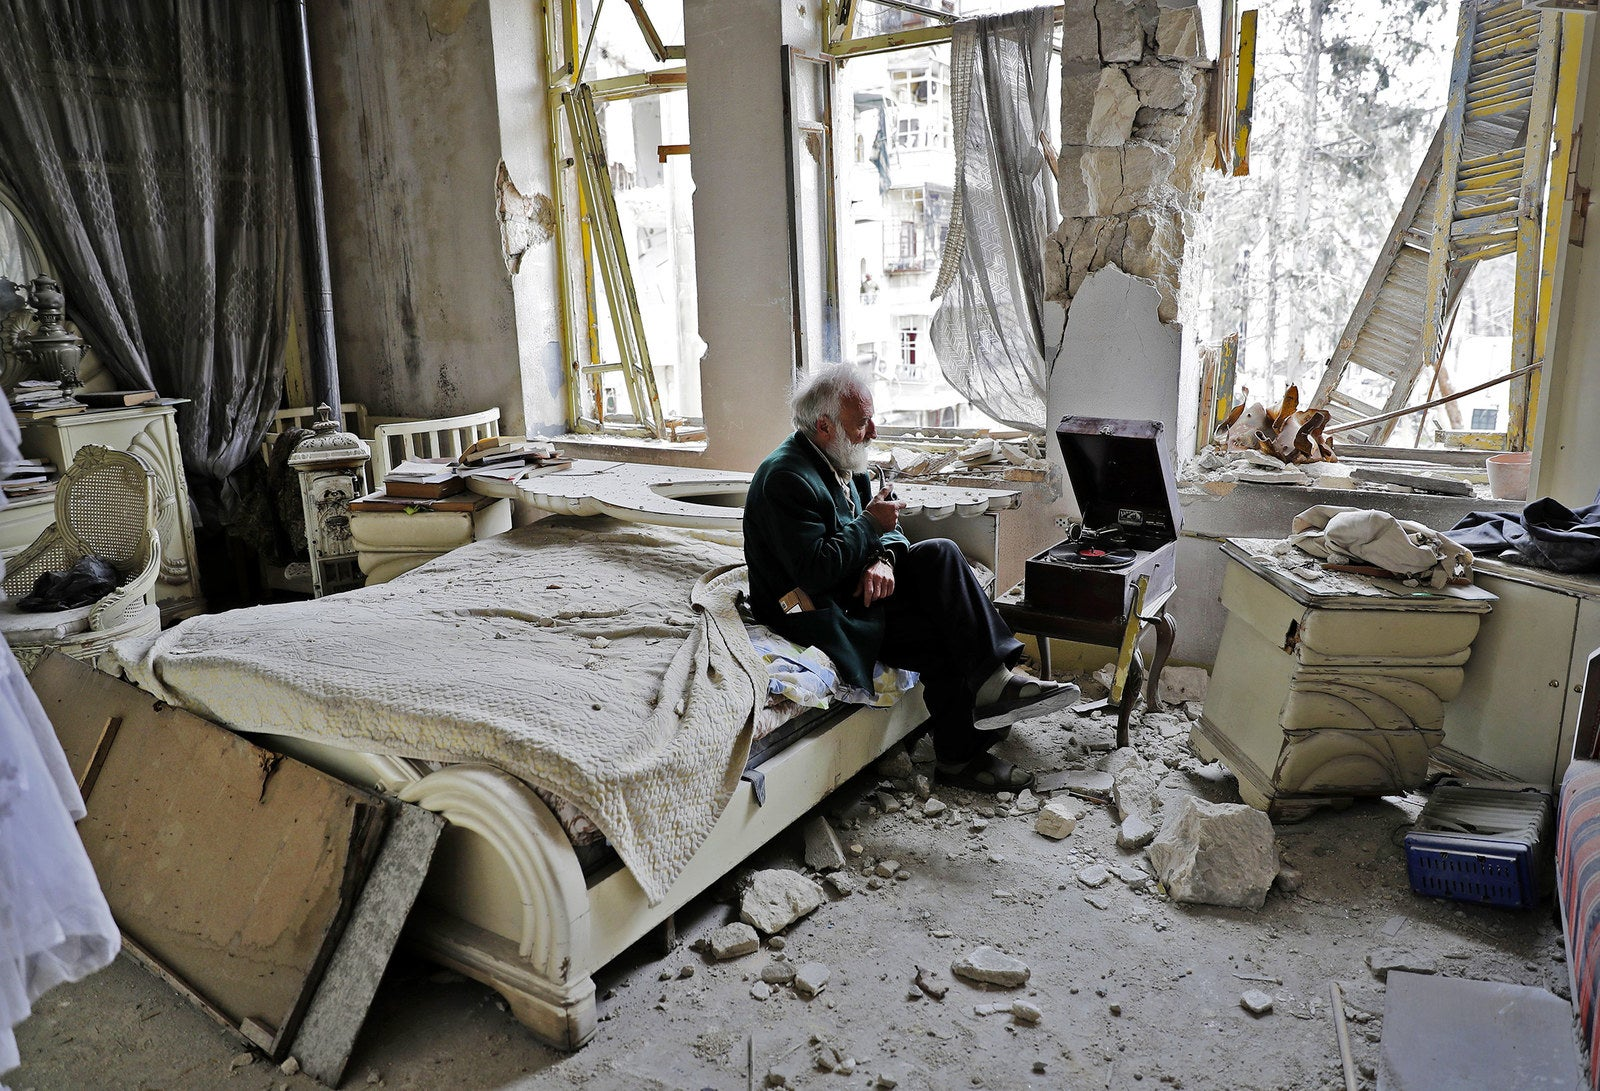 Mohammed Mohiedin Anis, 70, smokes his pipe as he sits in his destroyed bedroom listening to music on his vinyl player, in Aleppo's formerly rebel-held al-Shaar neighborhood on March 9.